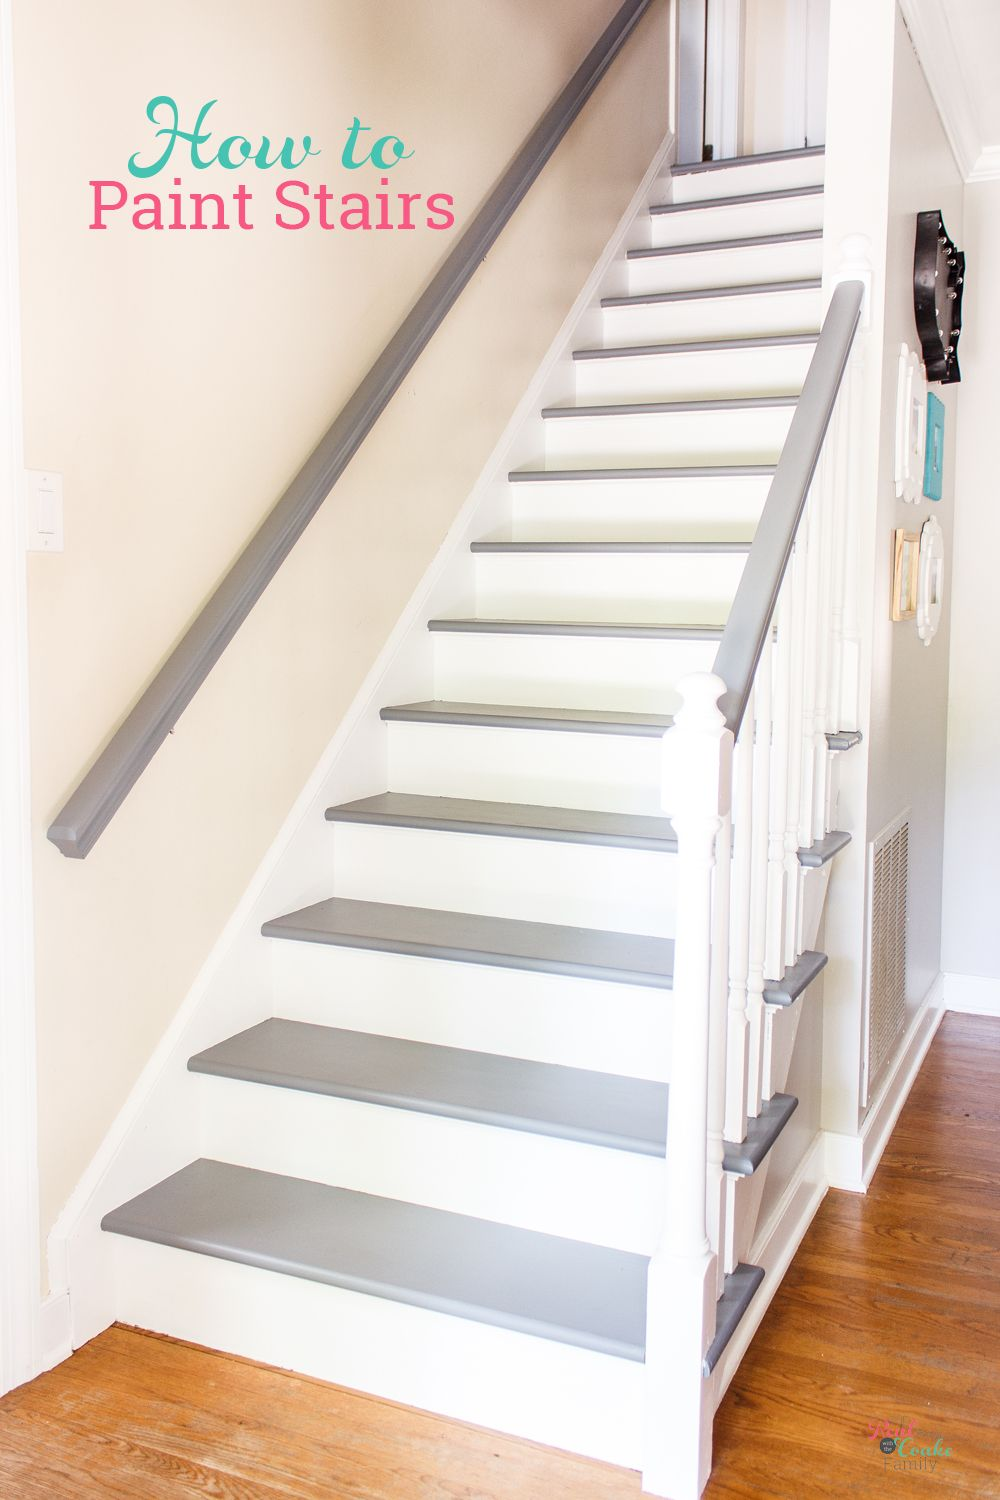 Your How To Guide For Painting Stairs Diy Staircase Stair   Staircase Renovation Near Me   Flooring   Diy Staircase Makeover   Wood   Stair Case   Paint